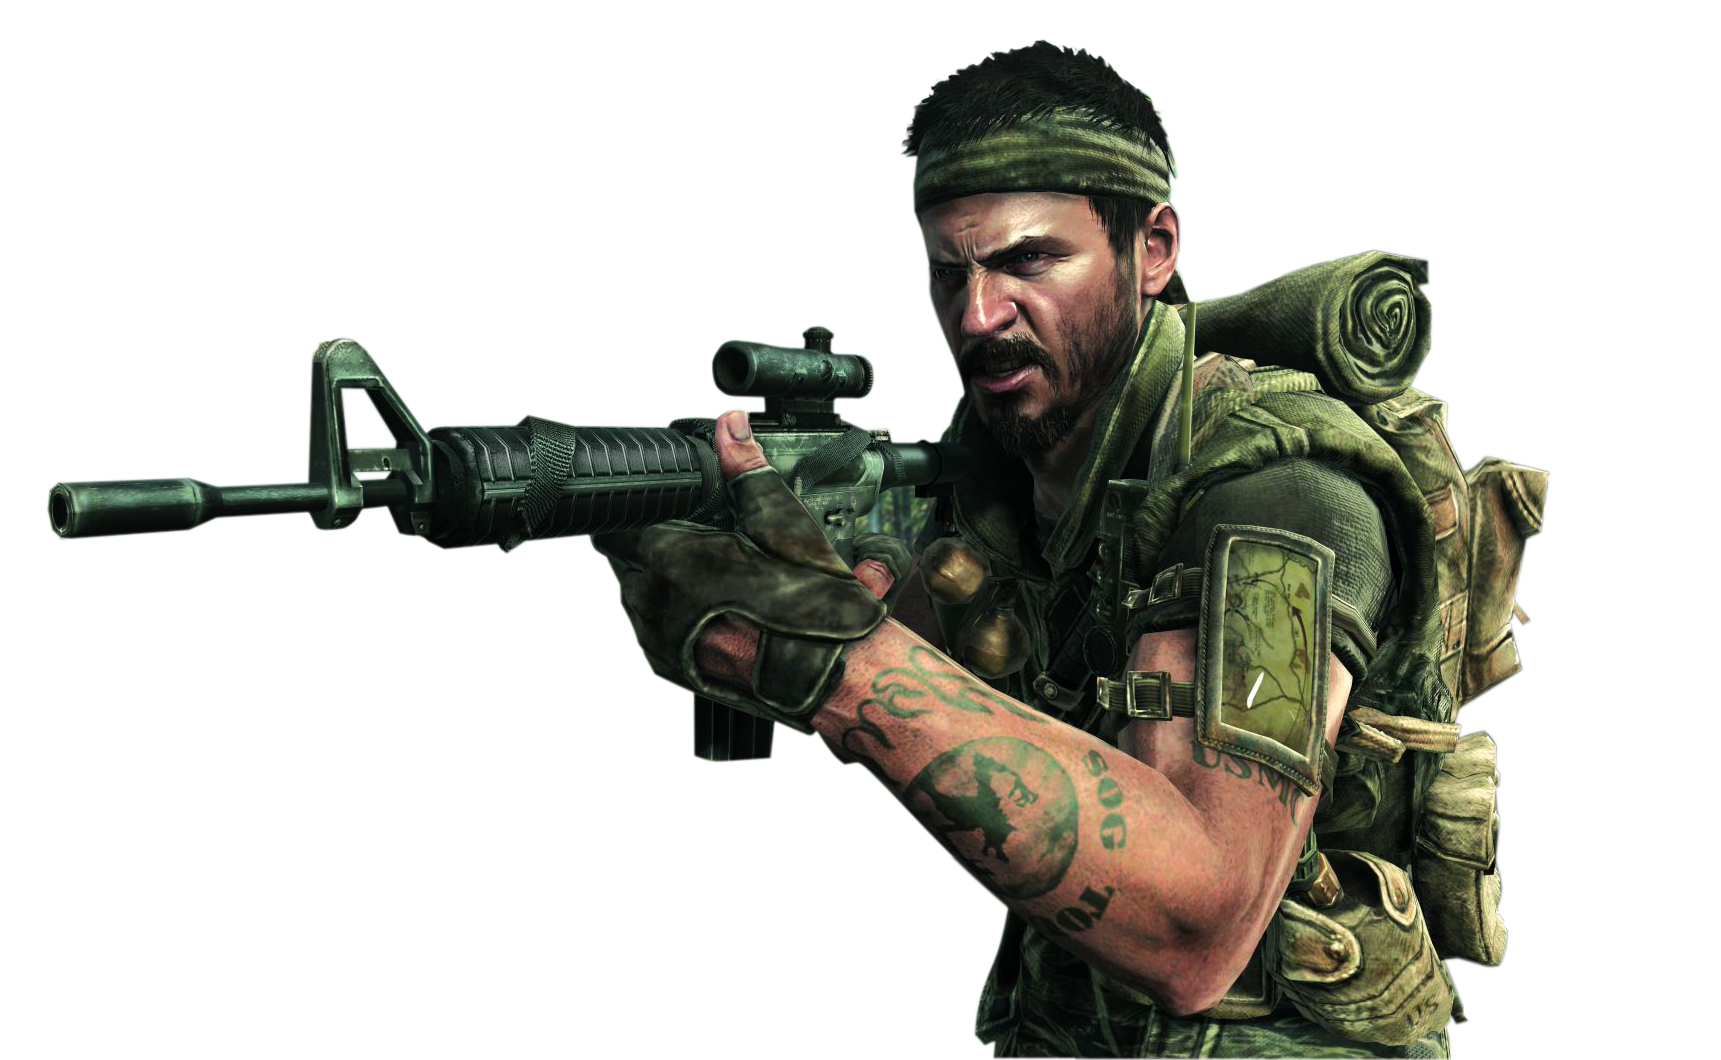 Black ops 3 characters png. Call of duty image